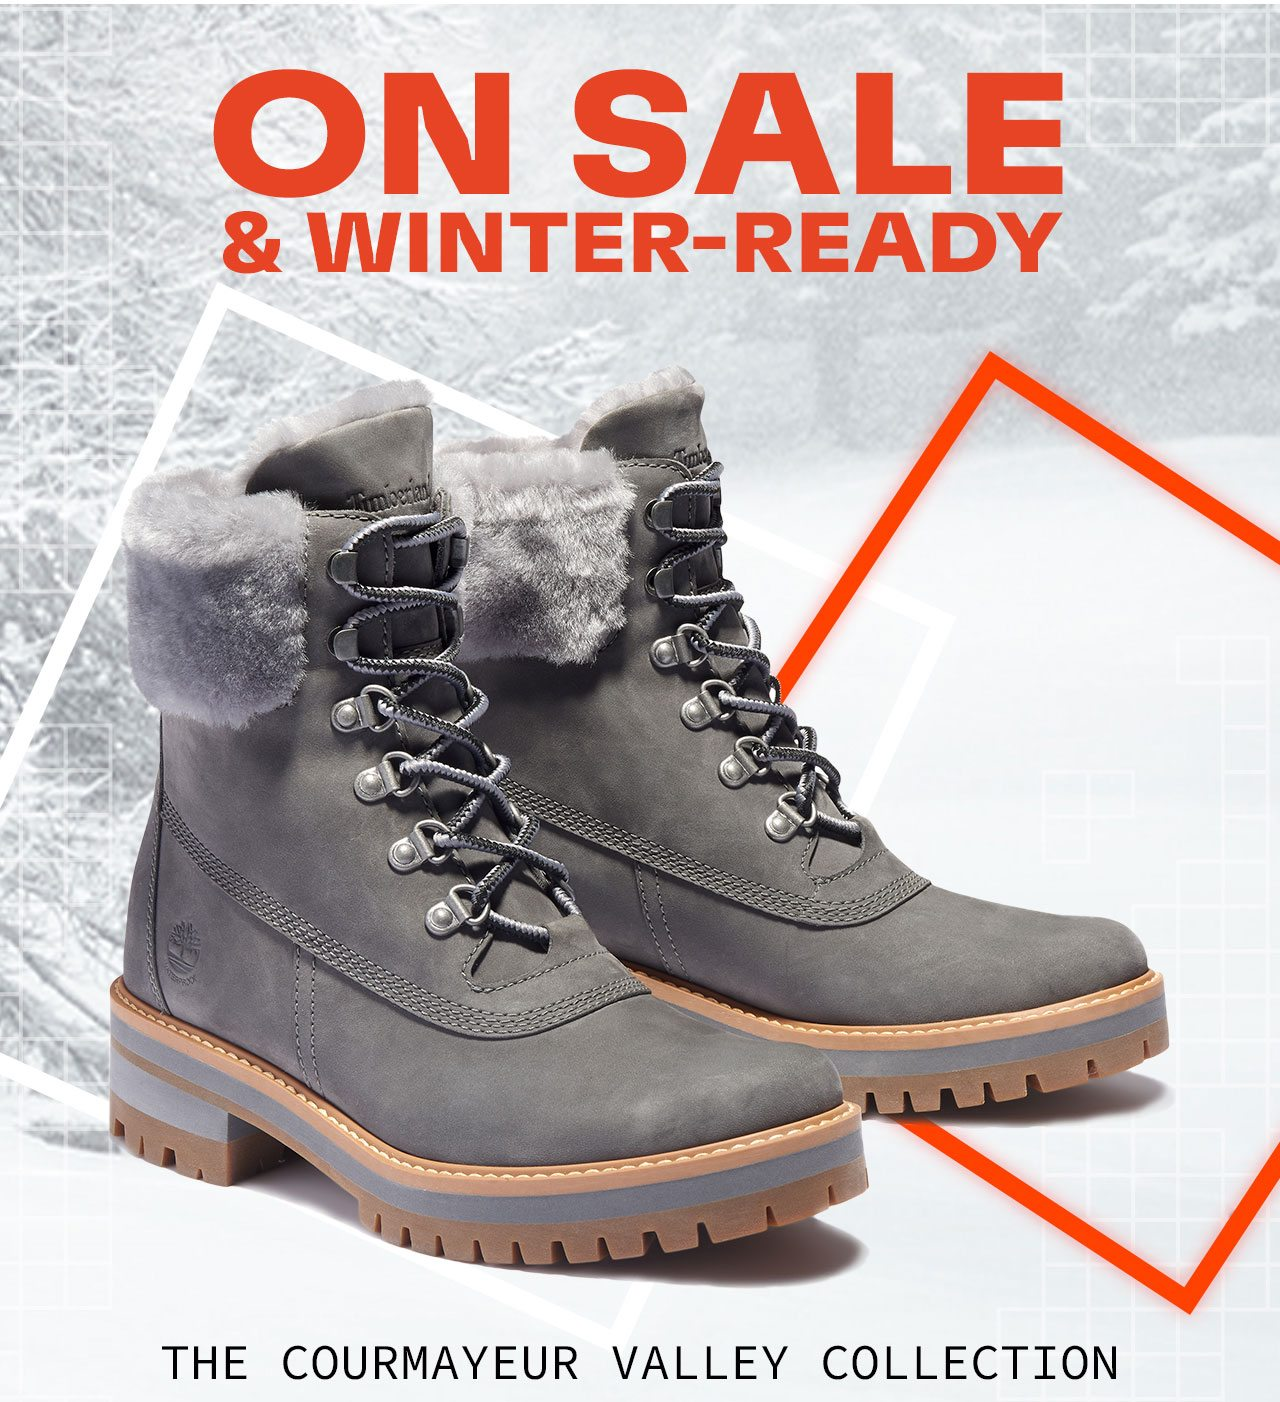 ON SALE AND WINTER READY